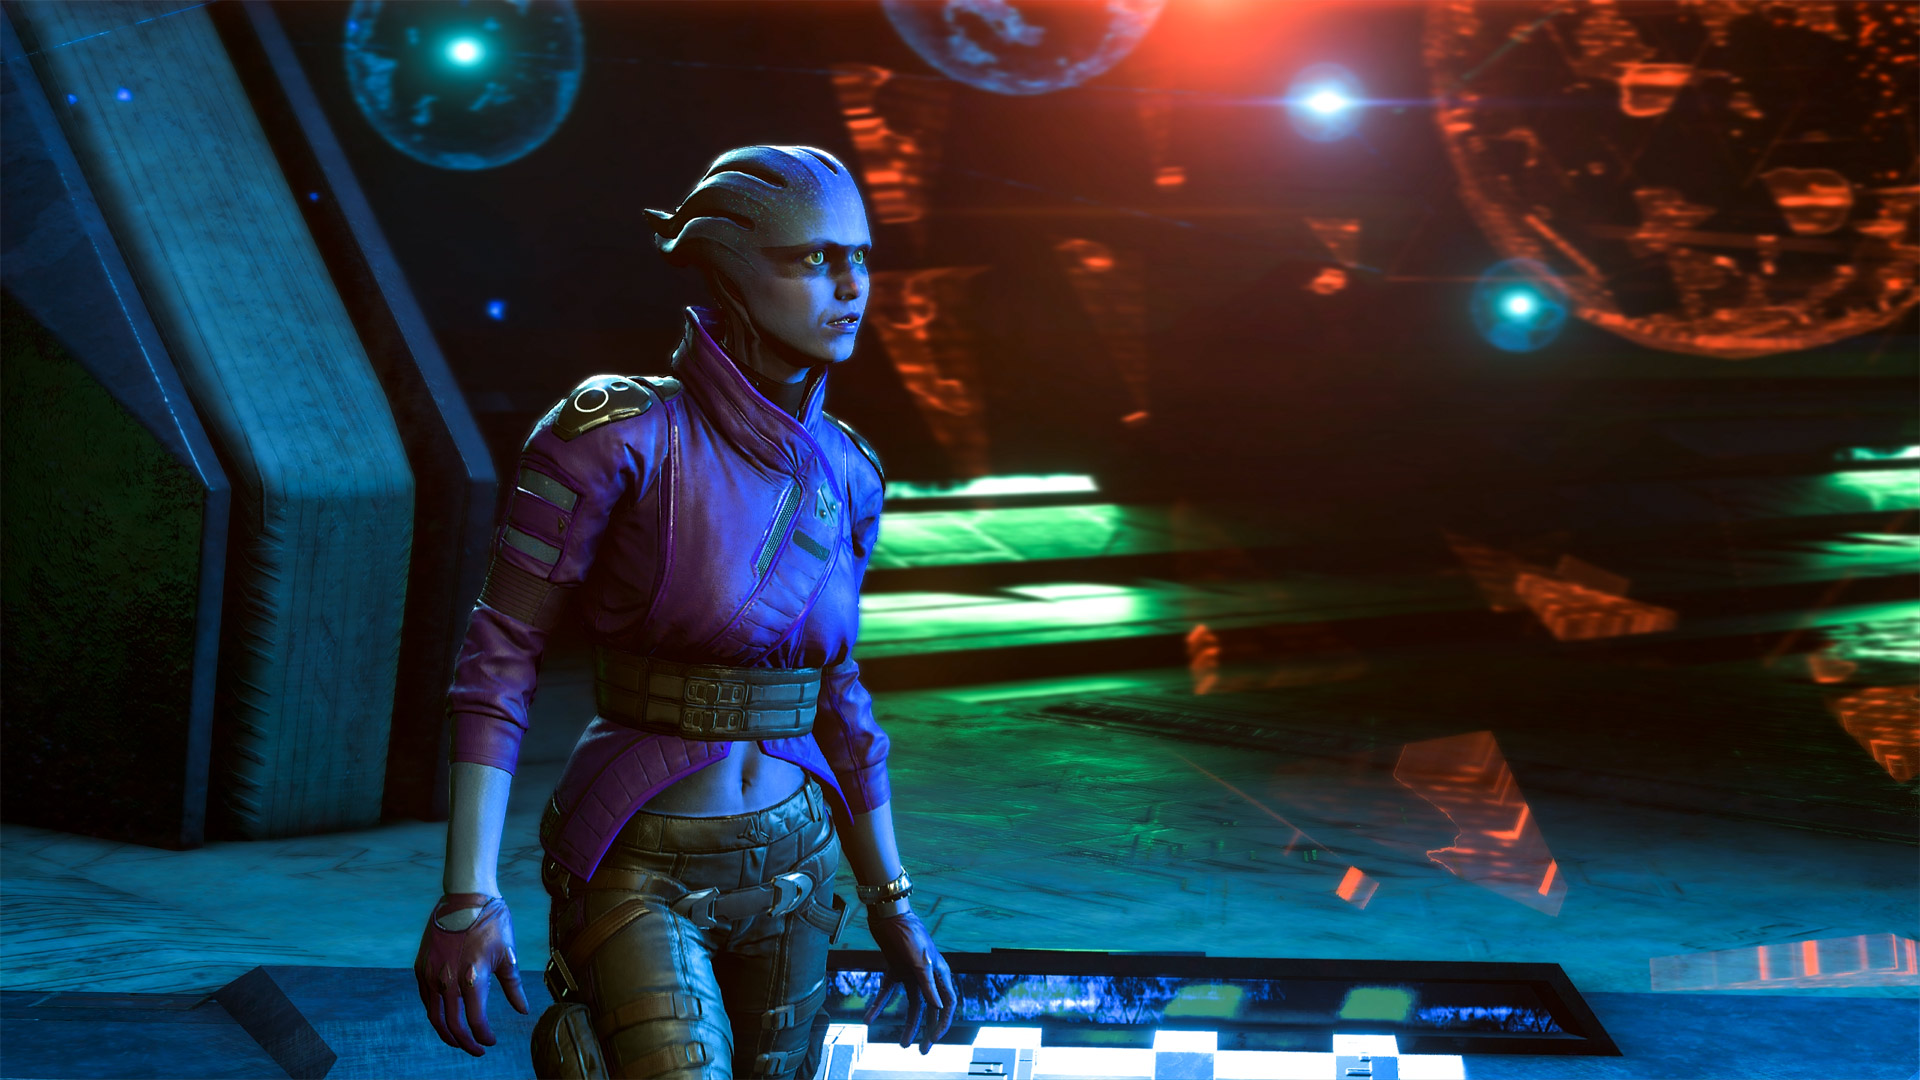 Did Mass Effect Andromeda Kill the Series?